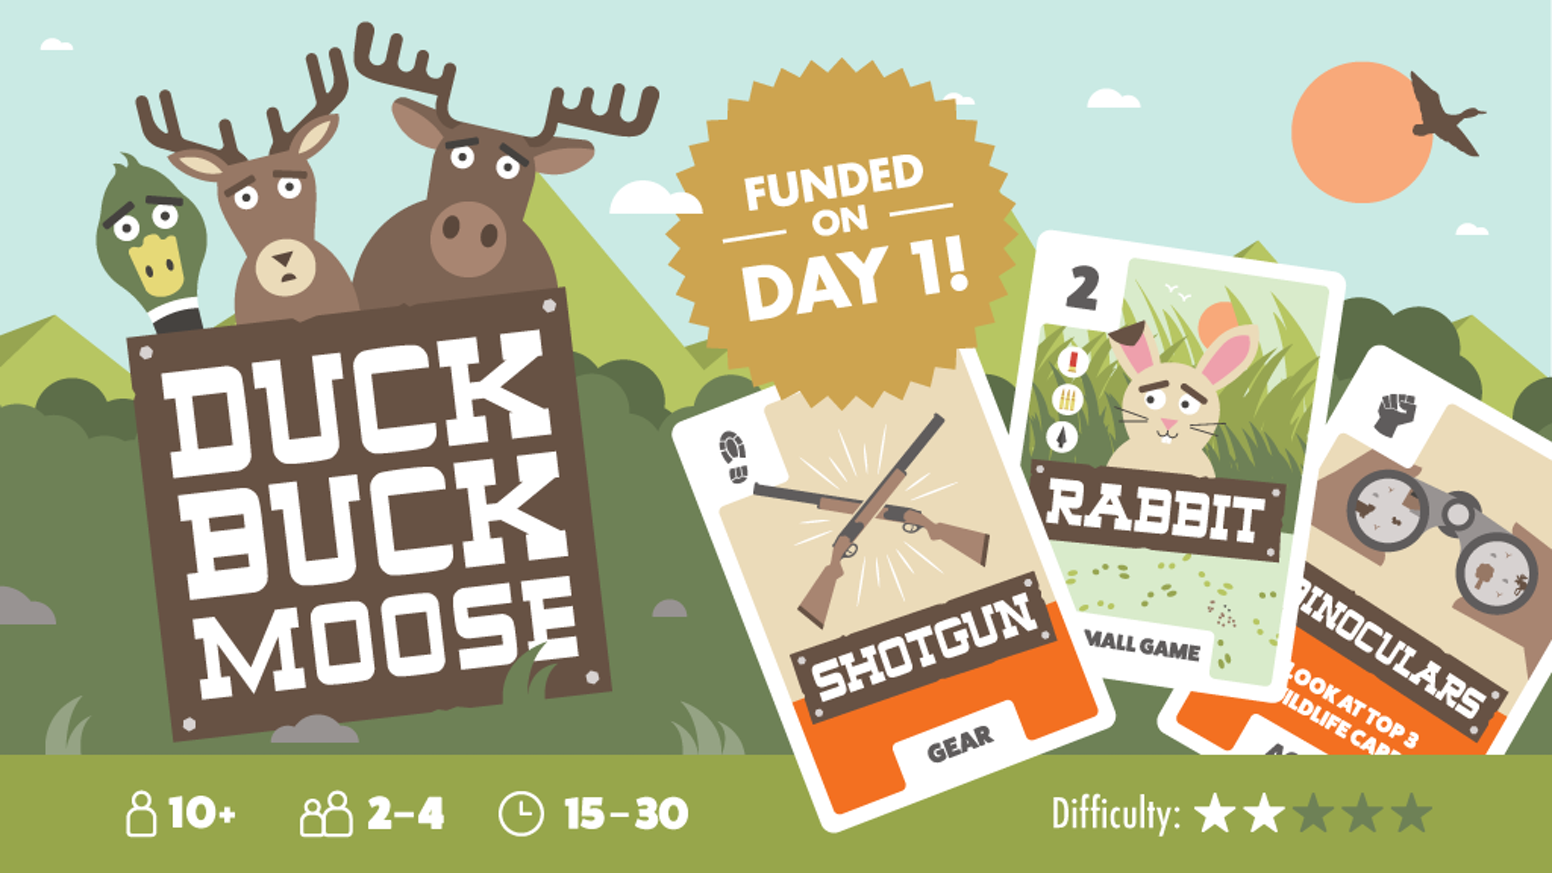 Compete with your friends on a hunt for furry woodland creatures in this totally not-serious card game of skill, sabotage and luck.